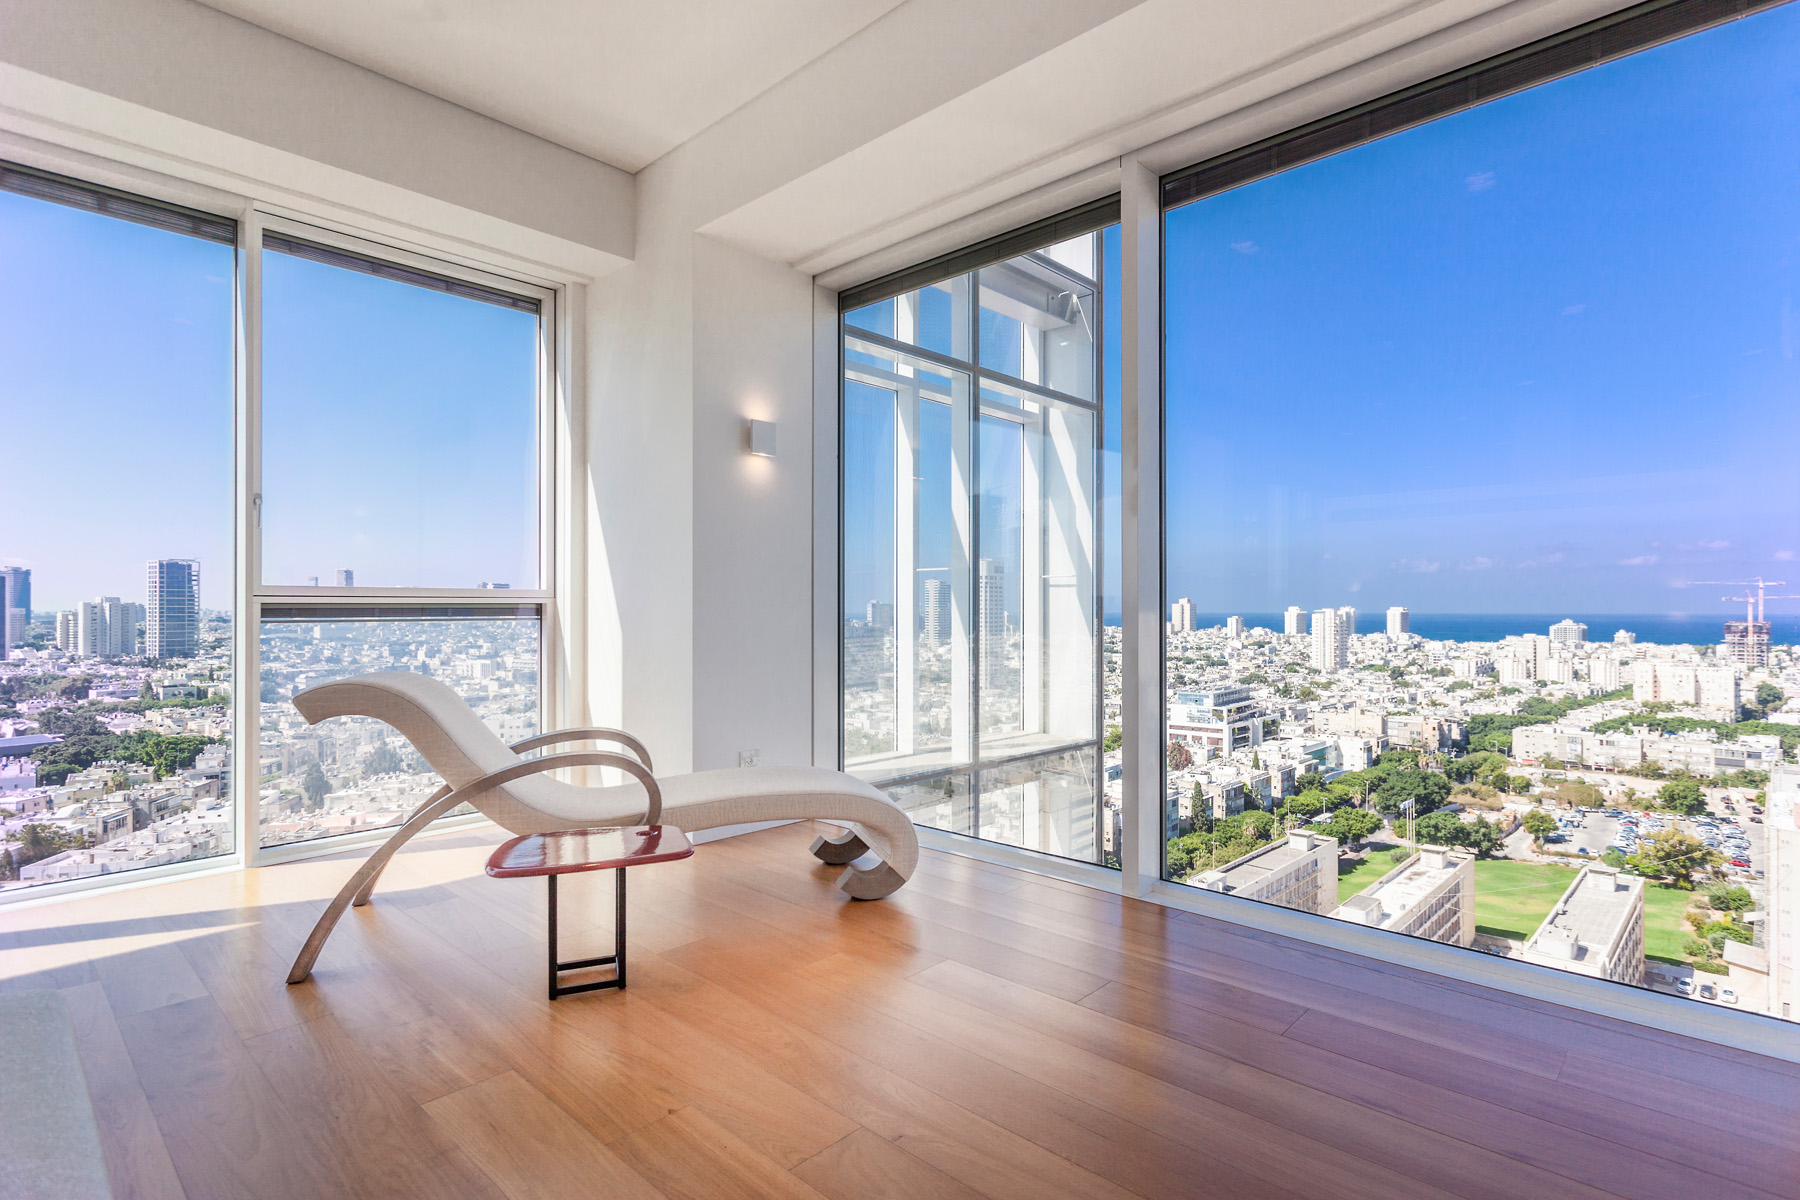 Wohnung für Verkauf beim Modern Luxury Apartment With Incomparable Views Tel Aviv, Israel